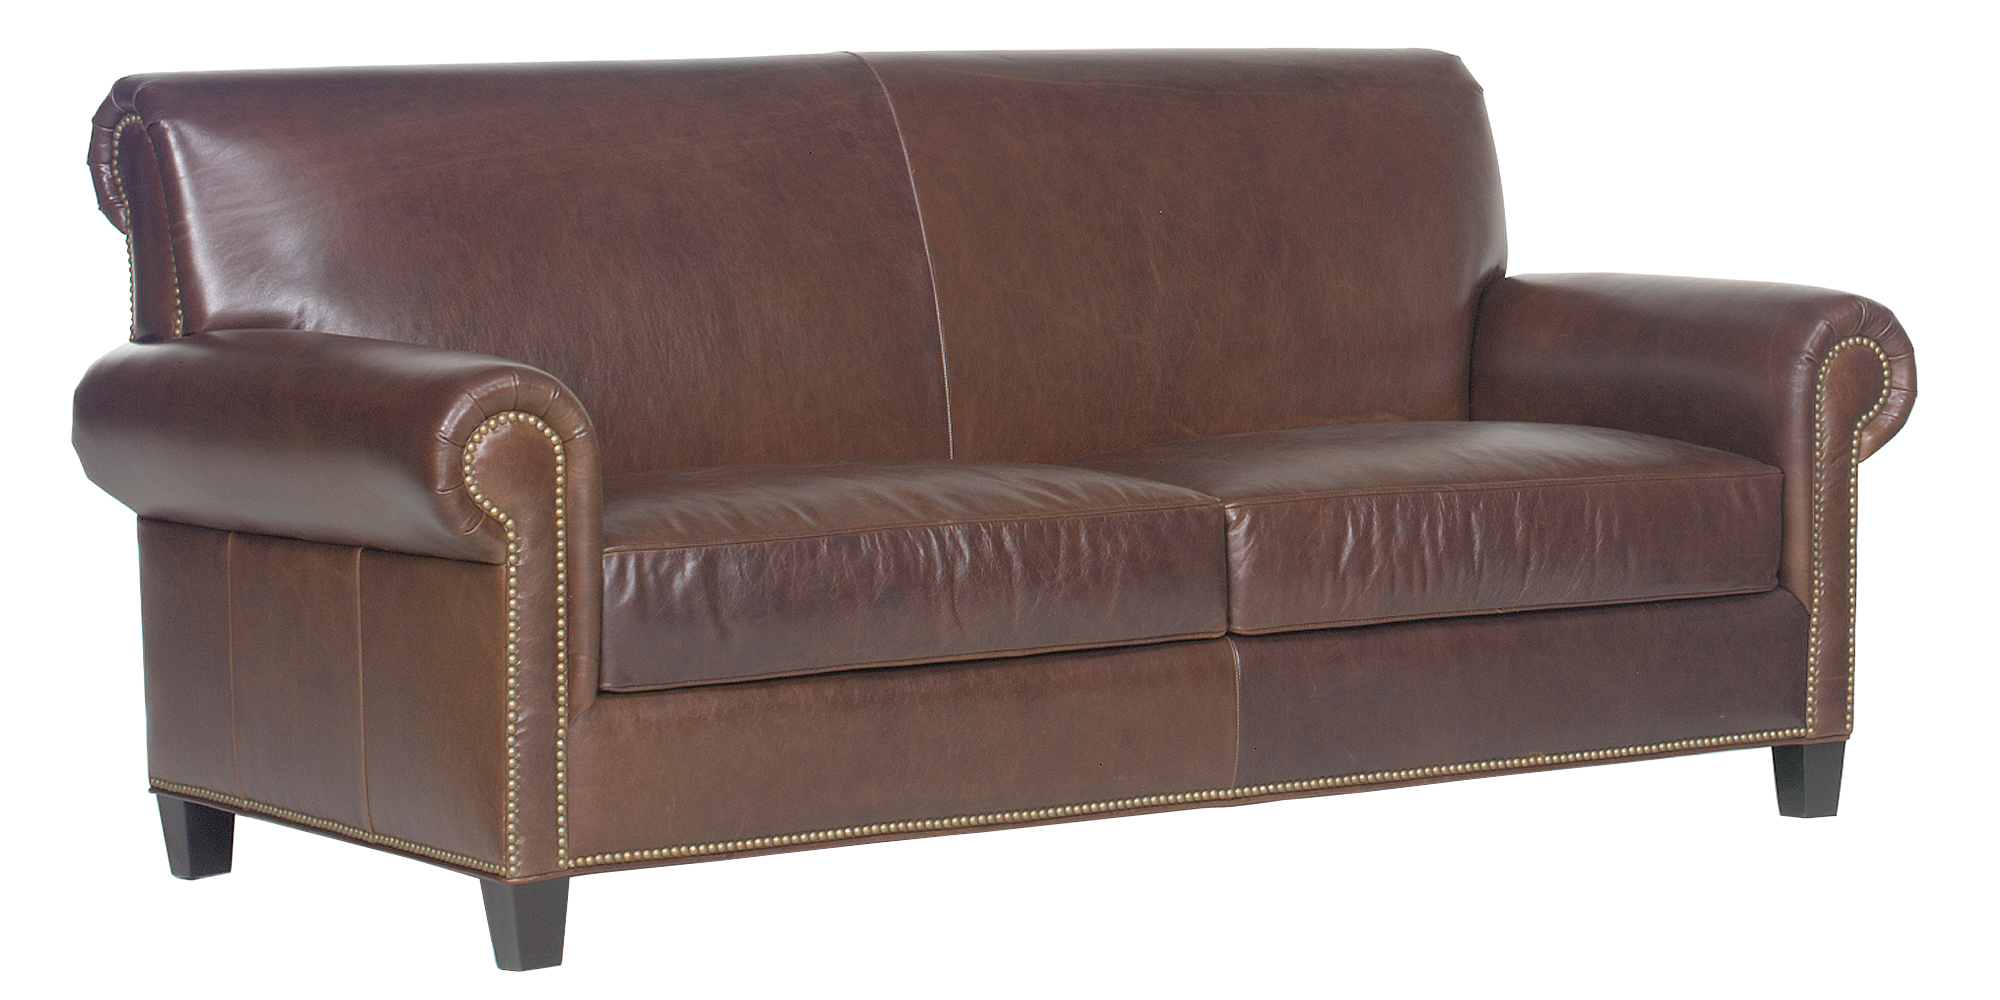 Traditional Tight Back Leather Sofa Loveseat Collection  : prescott designer style traditional tight back leather set w nailheads 1 from www.clubfurniture.com size 2000 x 1000 jpeg 1328kB